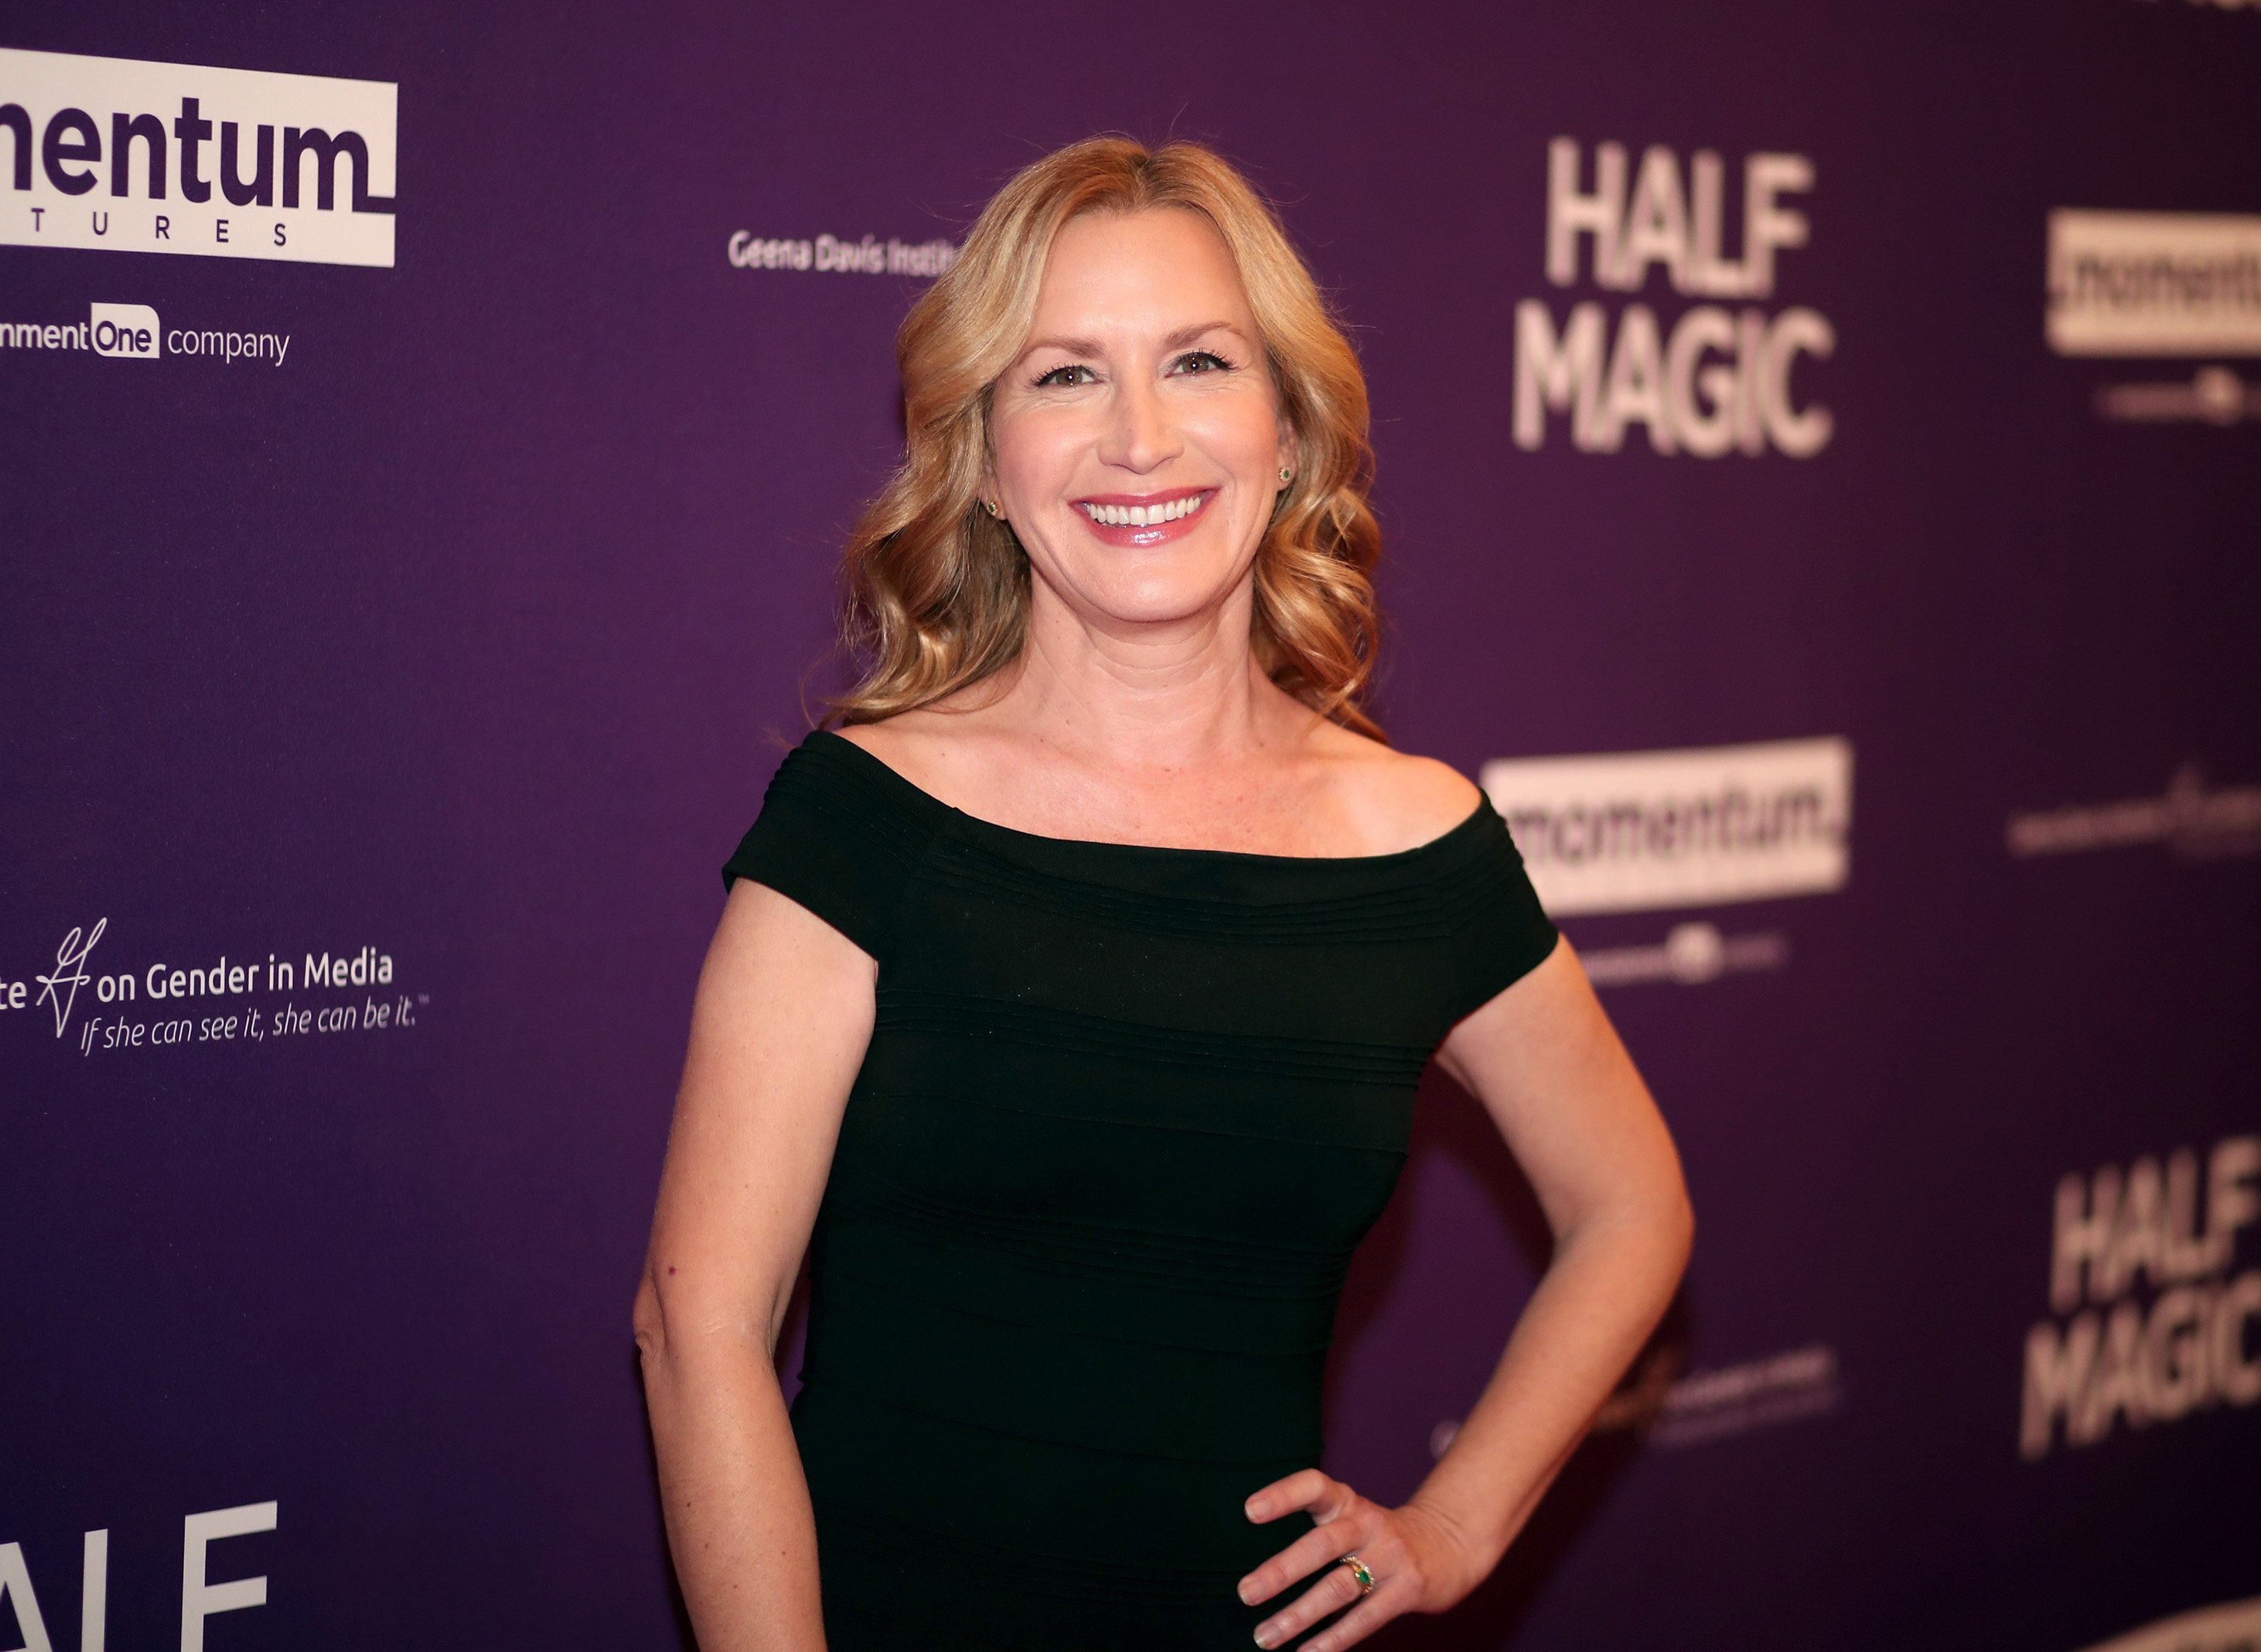 WEST HOLLYWOOD, CA - FEBRUARY 21:  Angela Kinsey attends the premiere of Momentum Pictures' 'Half Magic'  at The London West Hollywood on February 21, 2018 in West Hollywood, California.  (Photo by Christopher Polk/Getty Images)